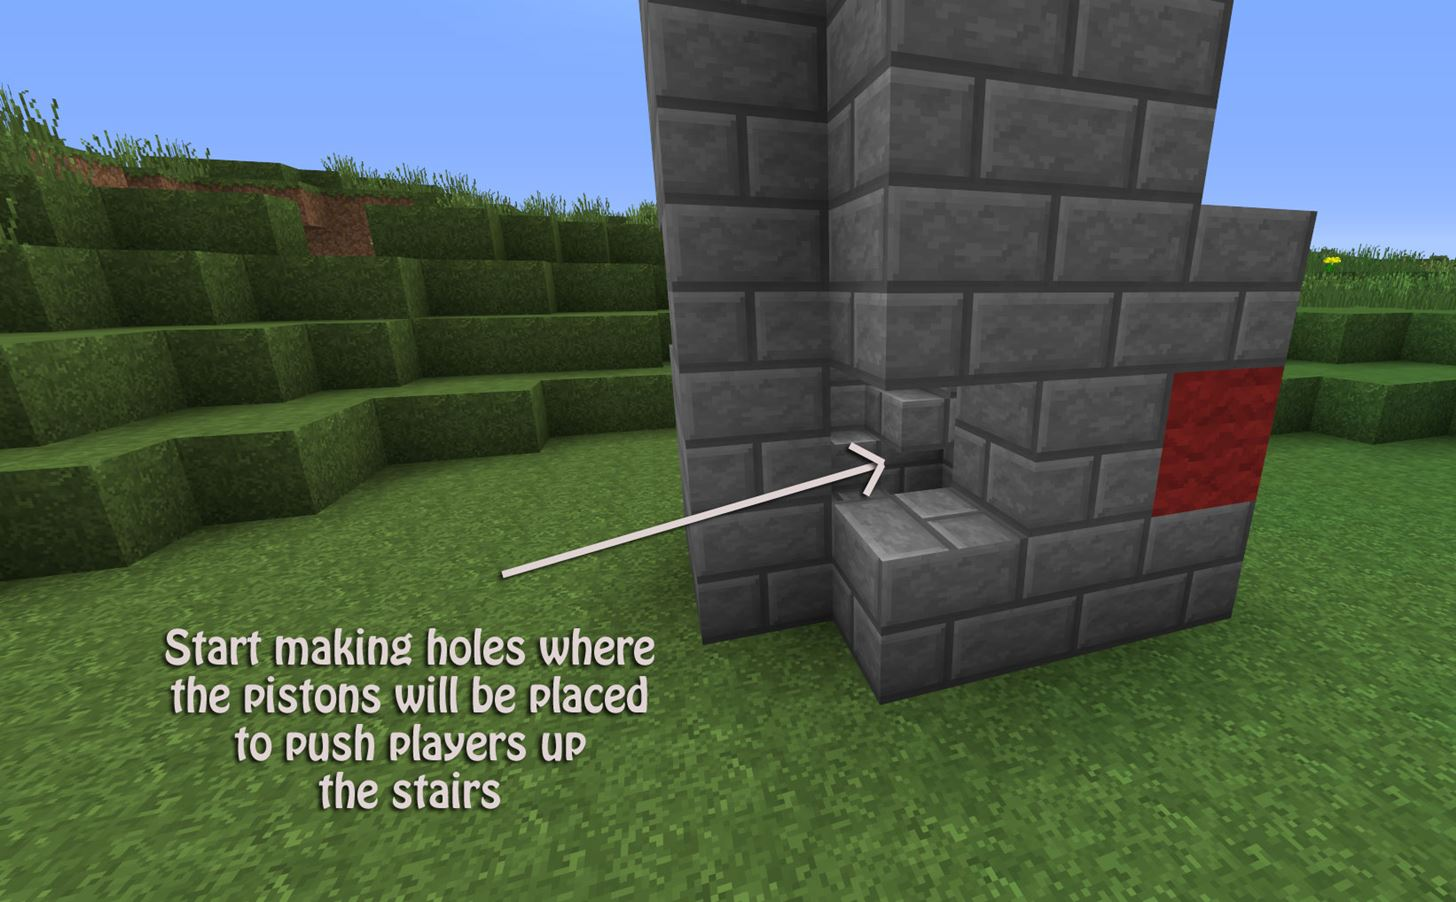 the fastest way to the top how to build a redstone concrete walkways around building perimeter can protect